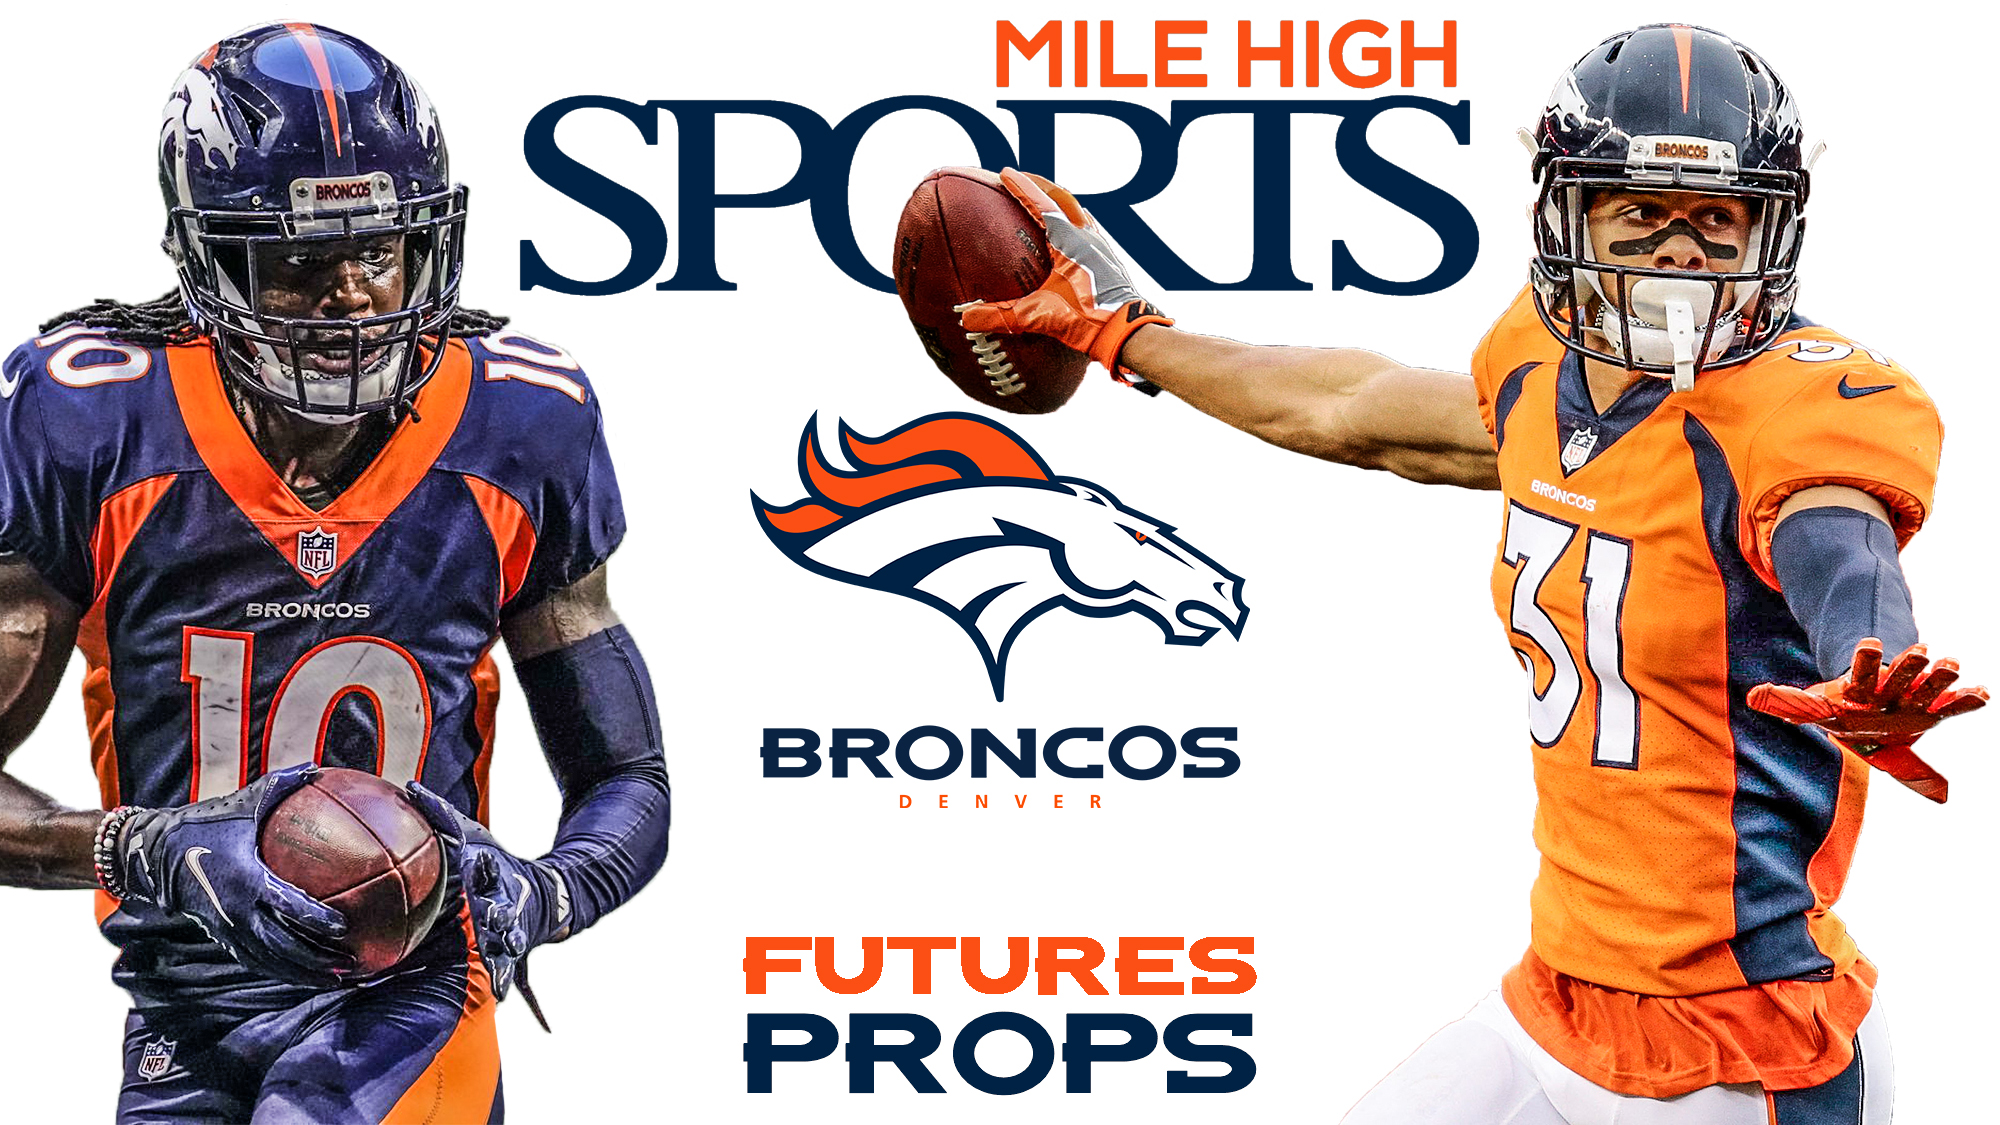 Mile High Sports, Denver Broncos, Futures, Props, Jerry Jeudy, Justin Simmons